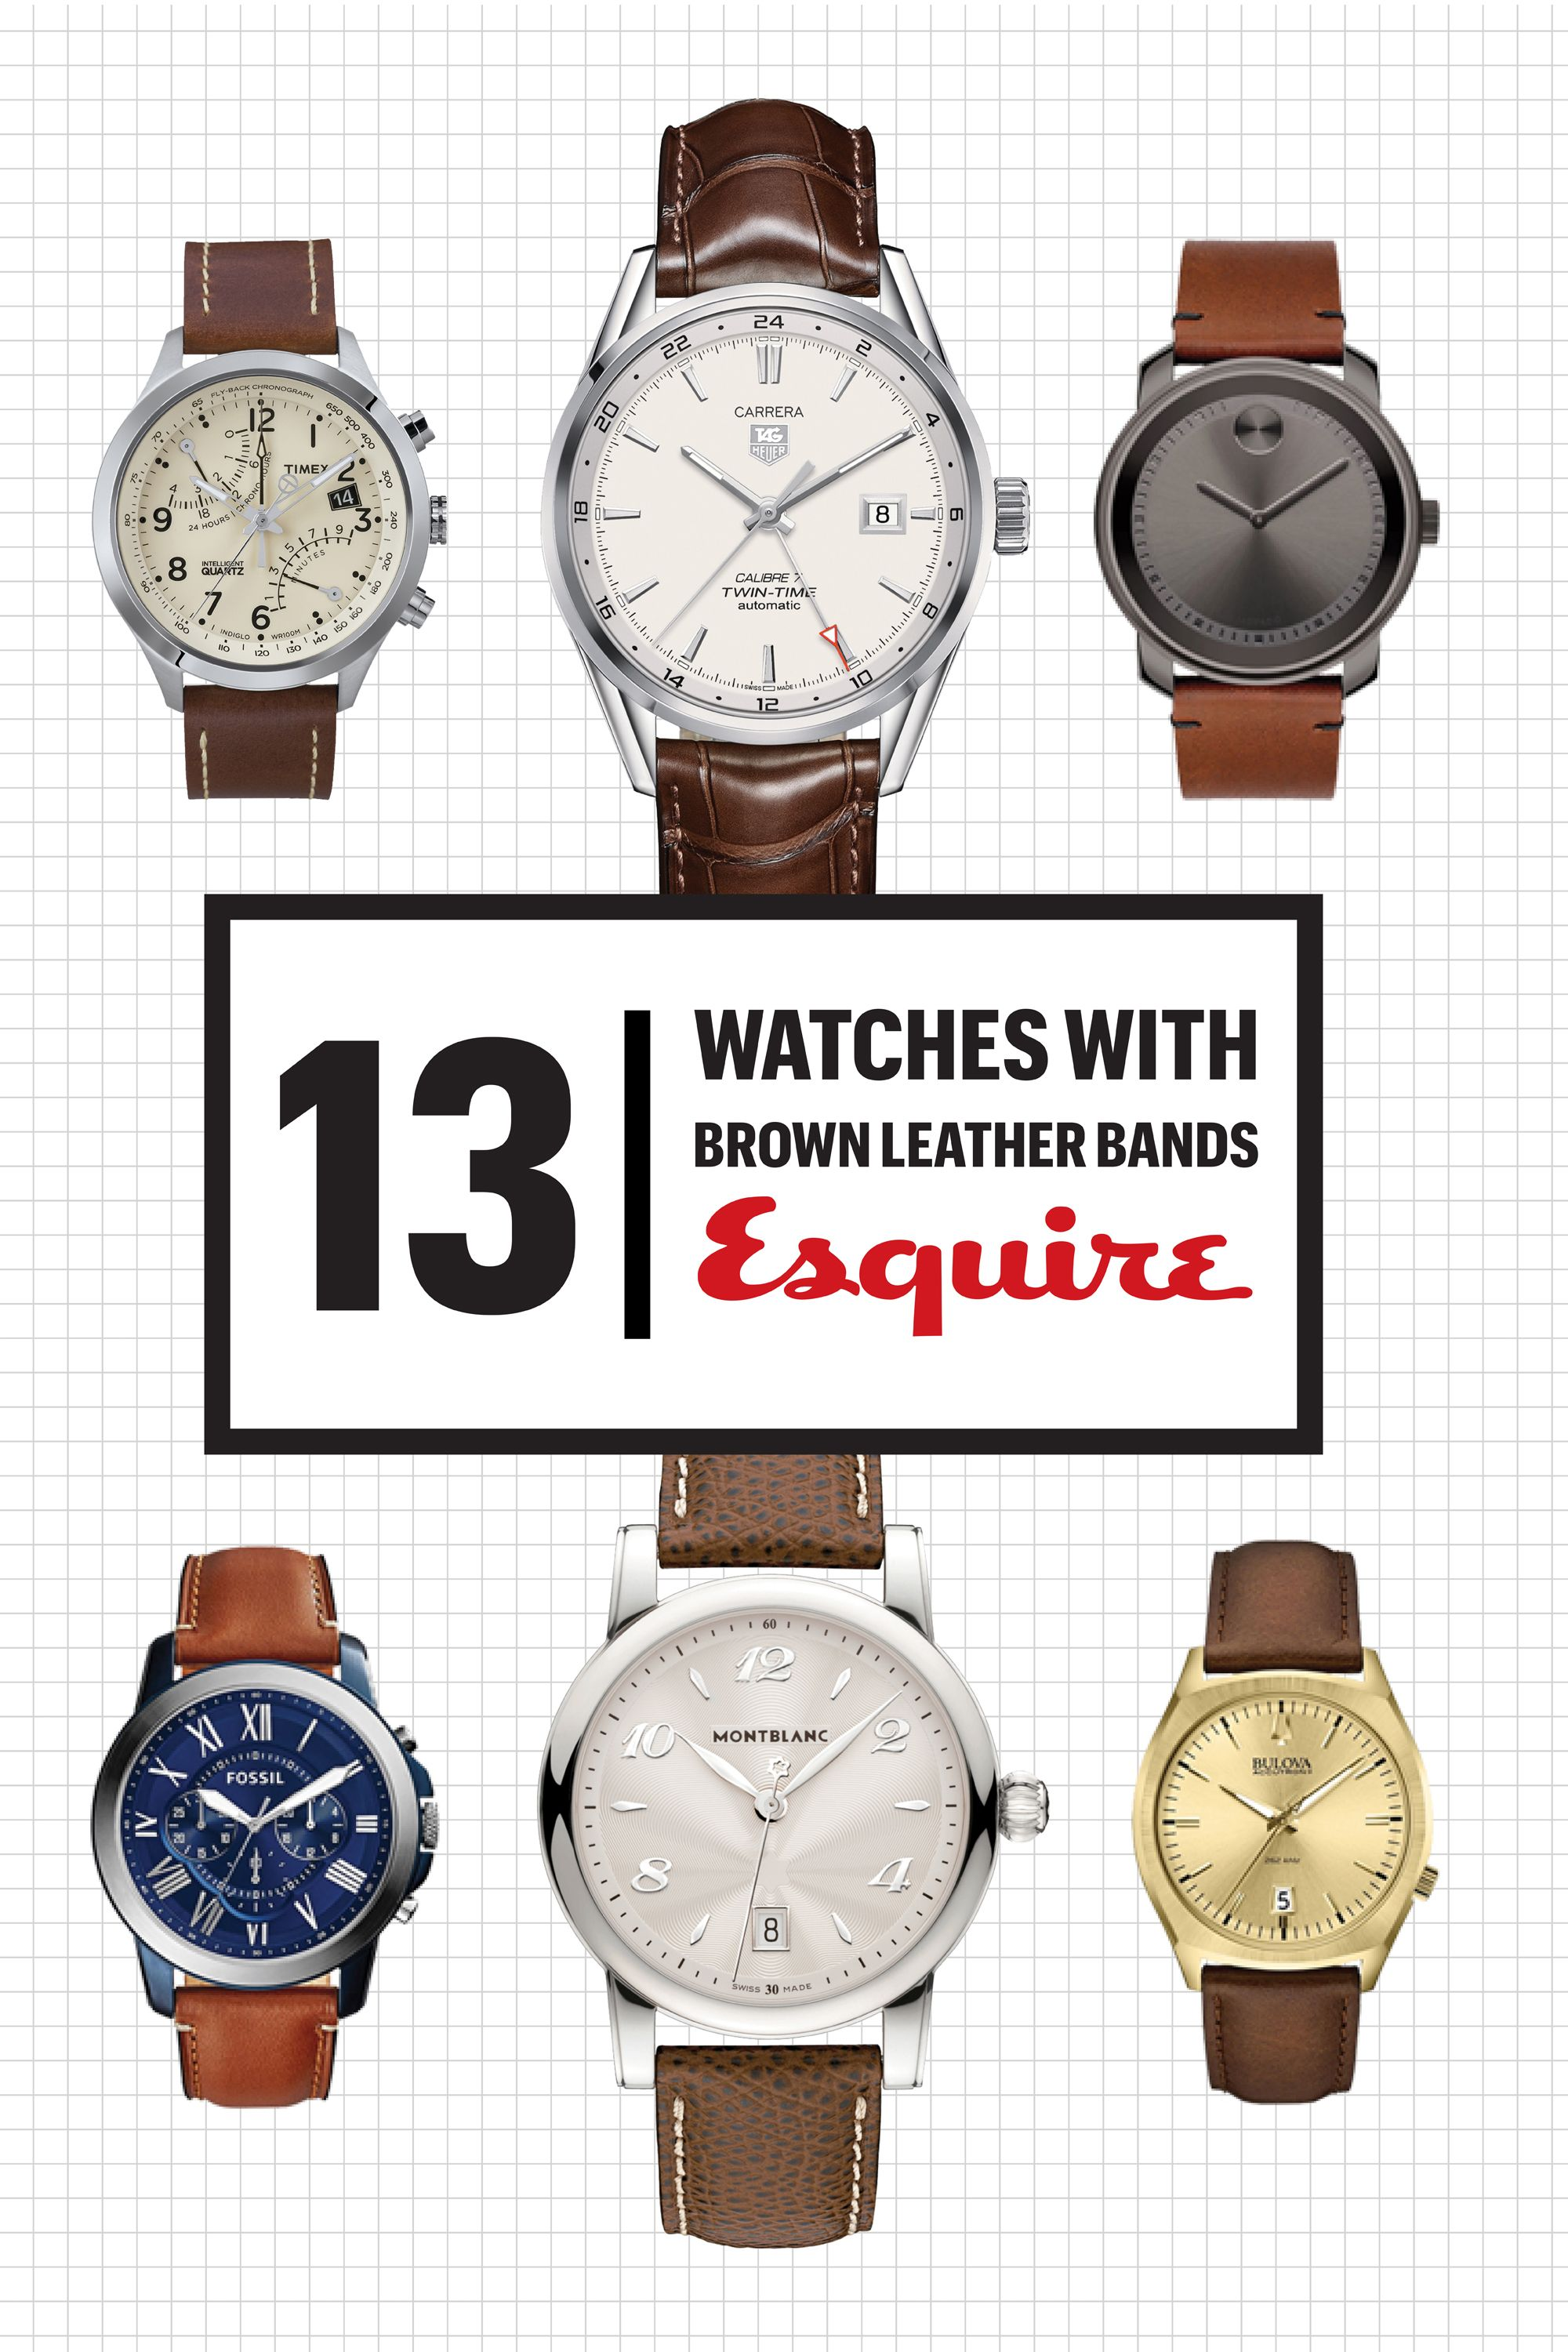 quartz wristwatch luxury new watches comes product calendar small leather dials three strap casual with fashion men